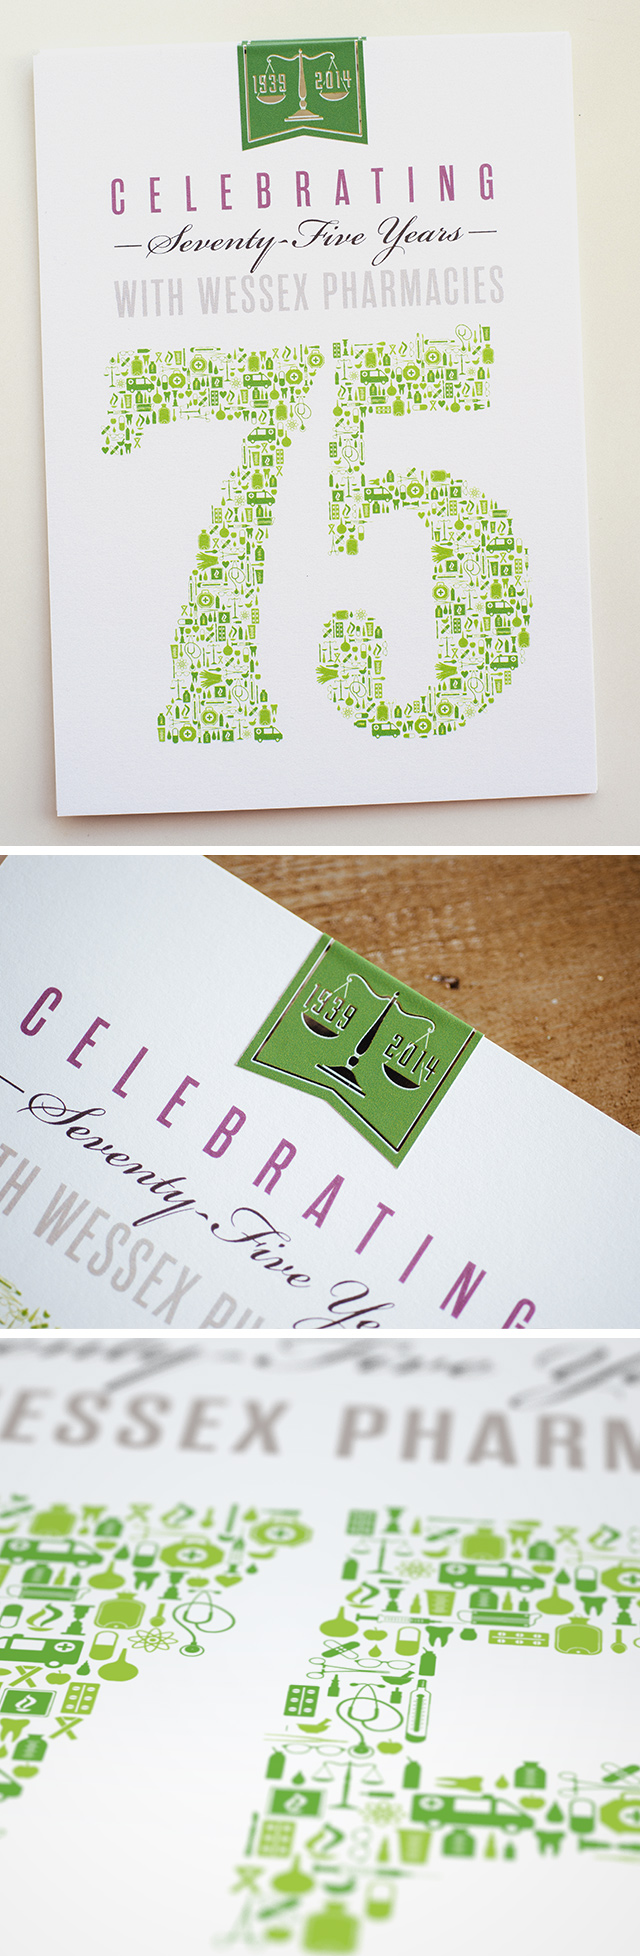 Anniversary Invitations for a 75-Year-Old Business | Adobe ...